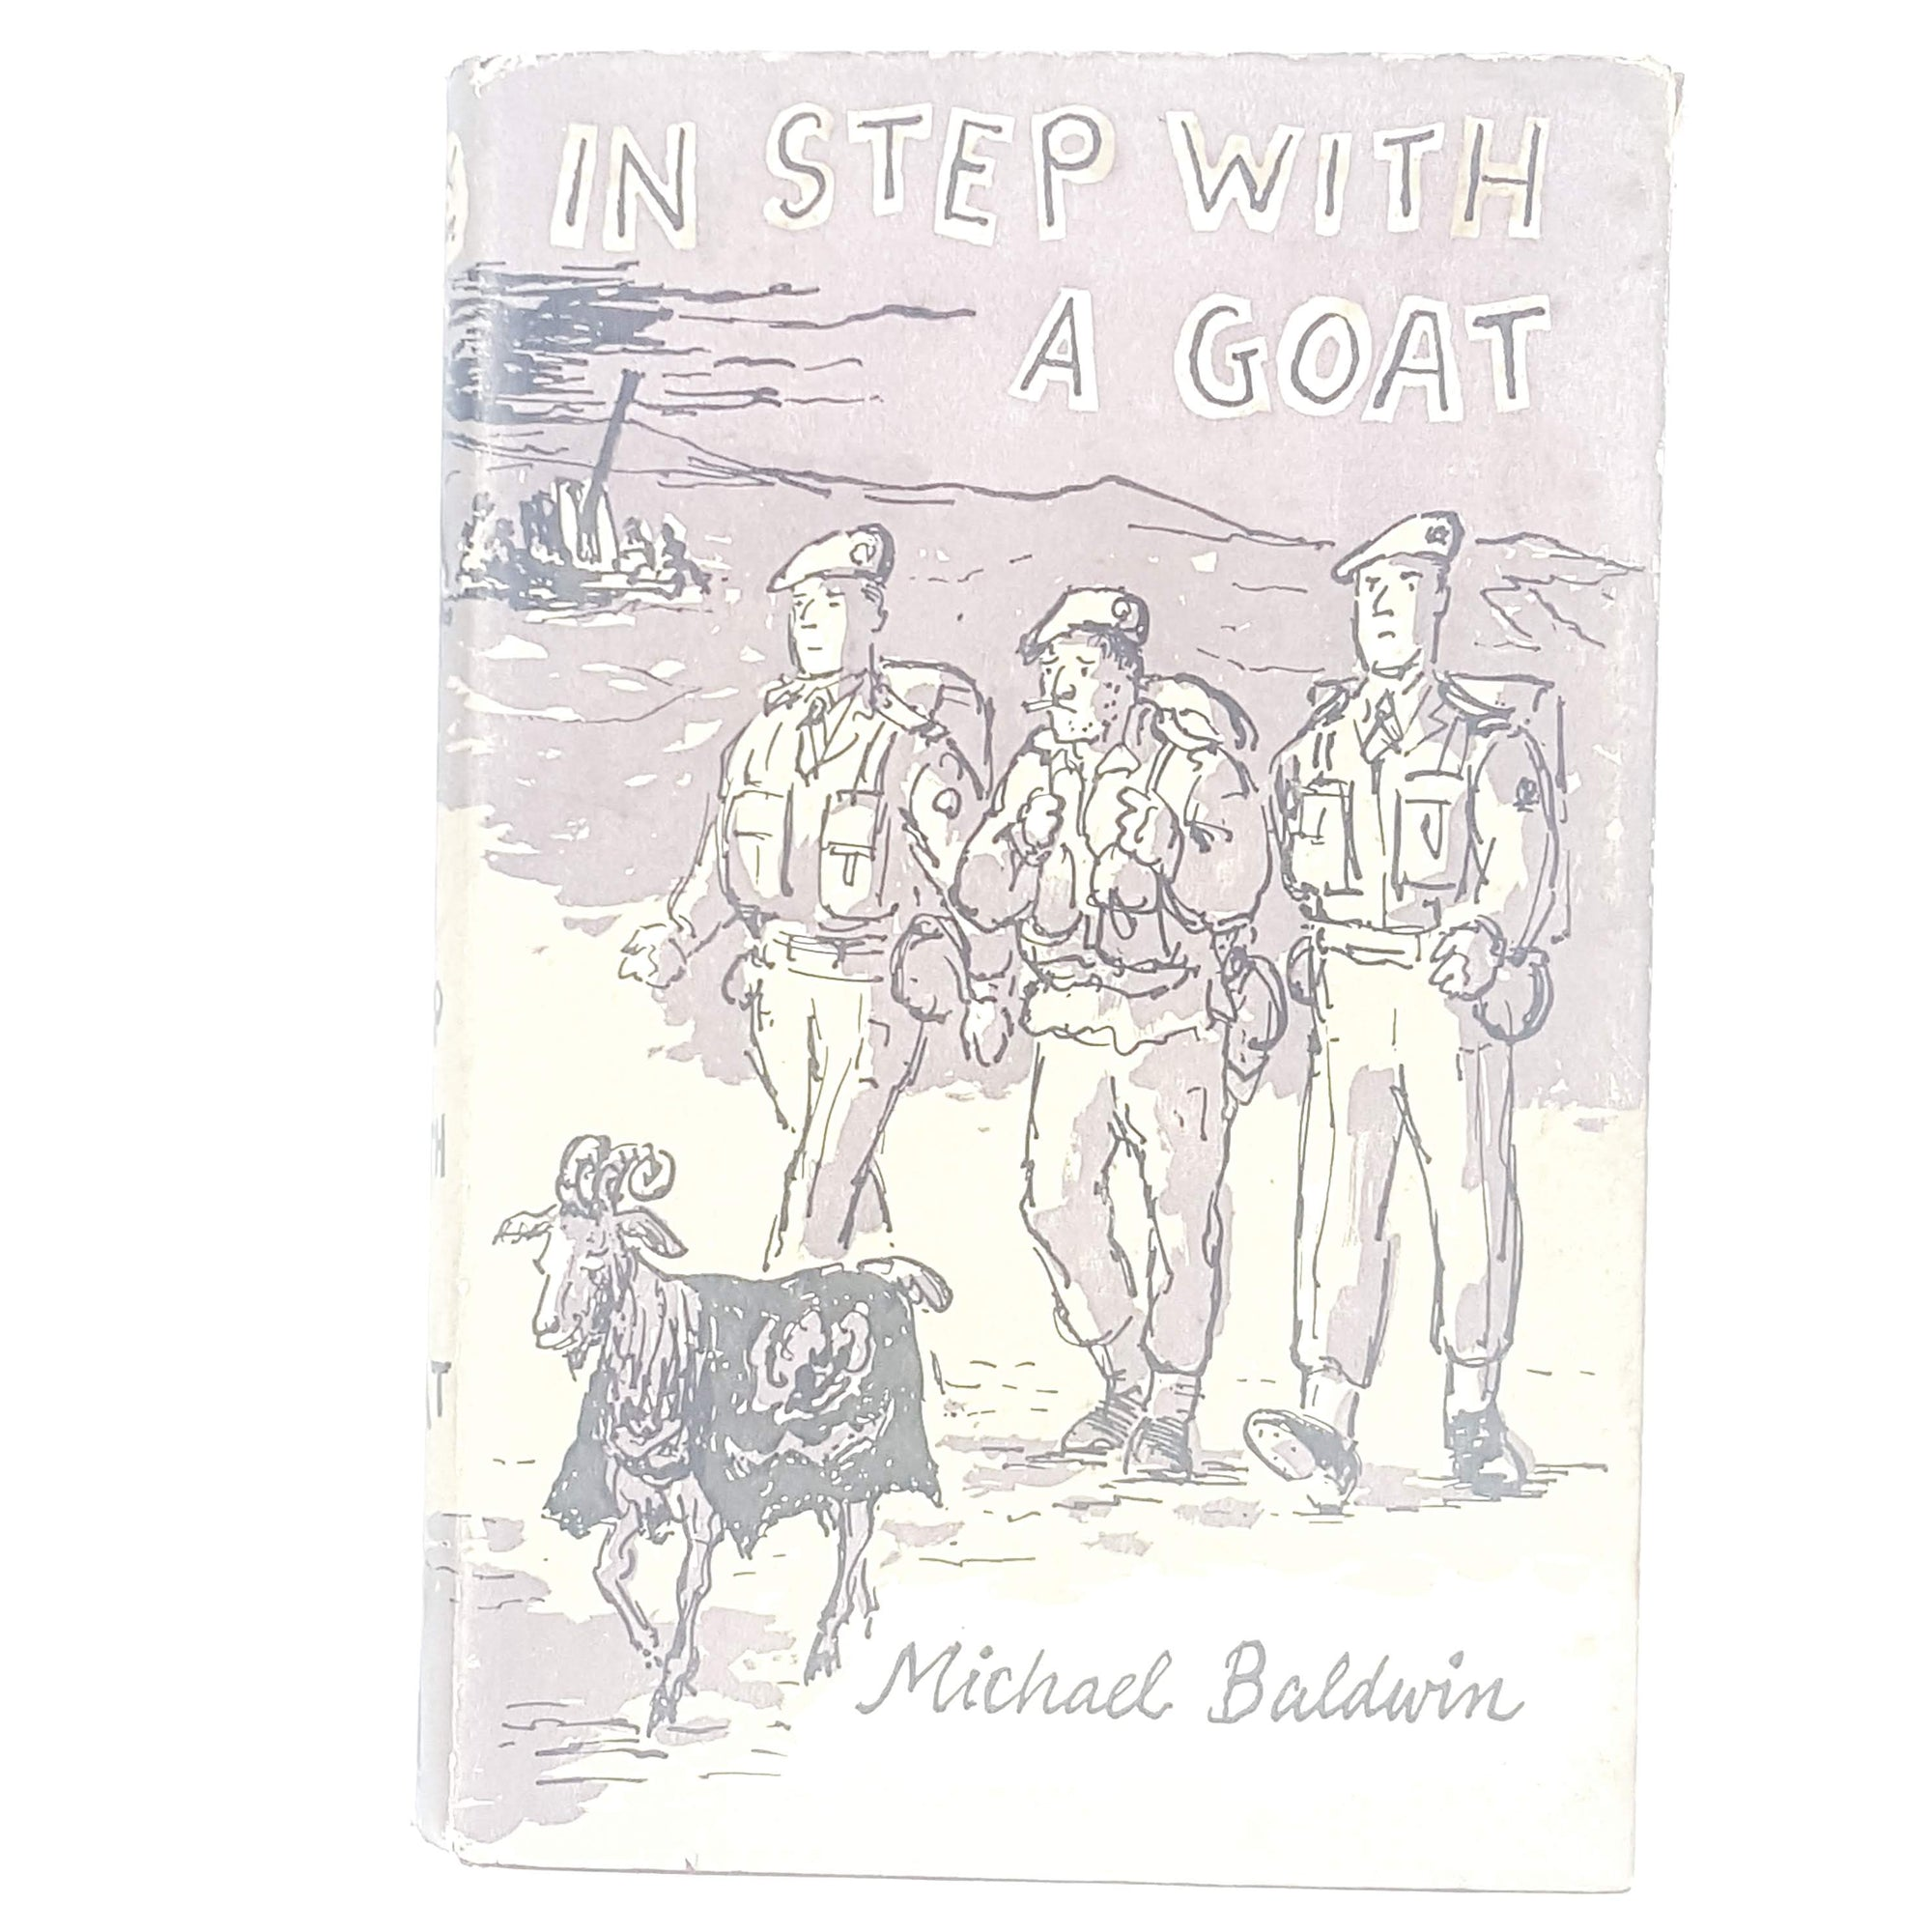 In Step With a Goat by Michael Baldwin 1963